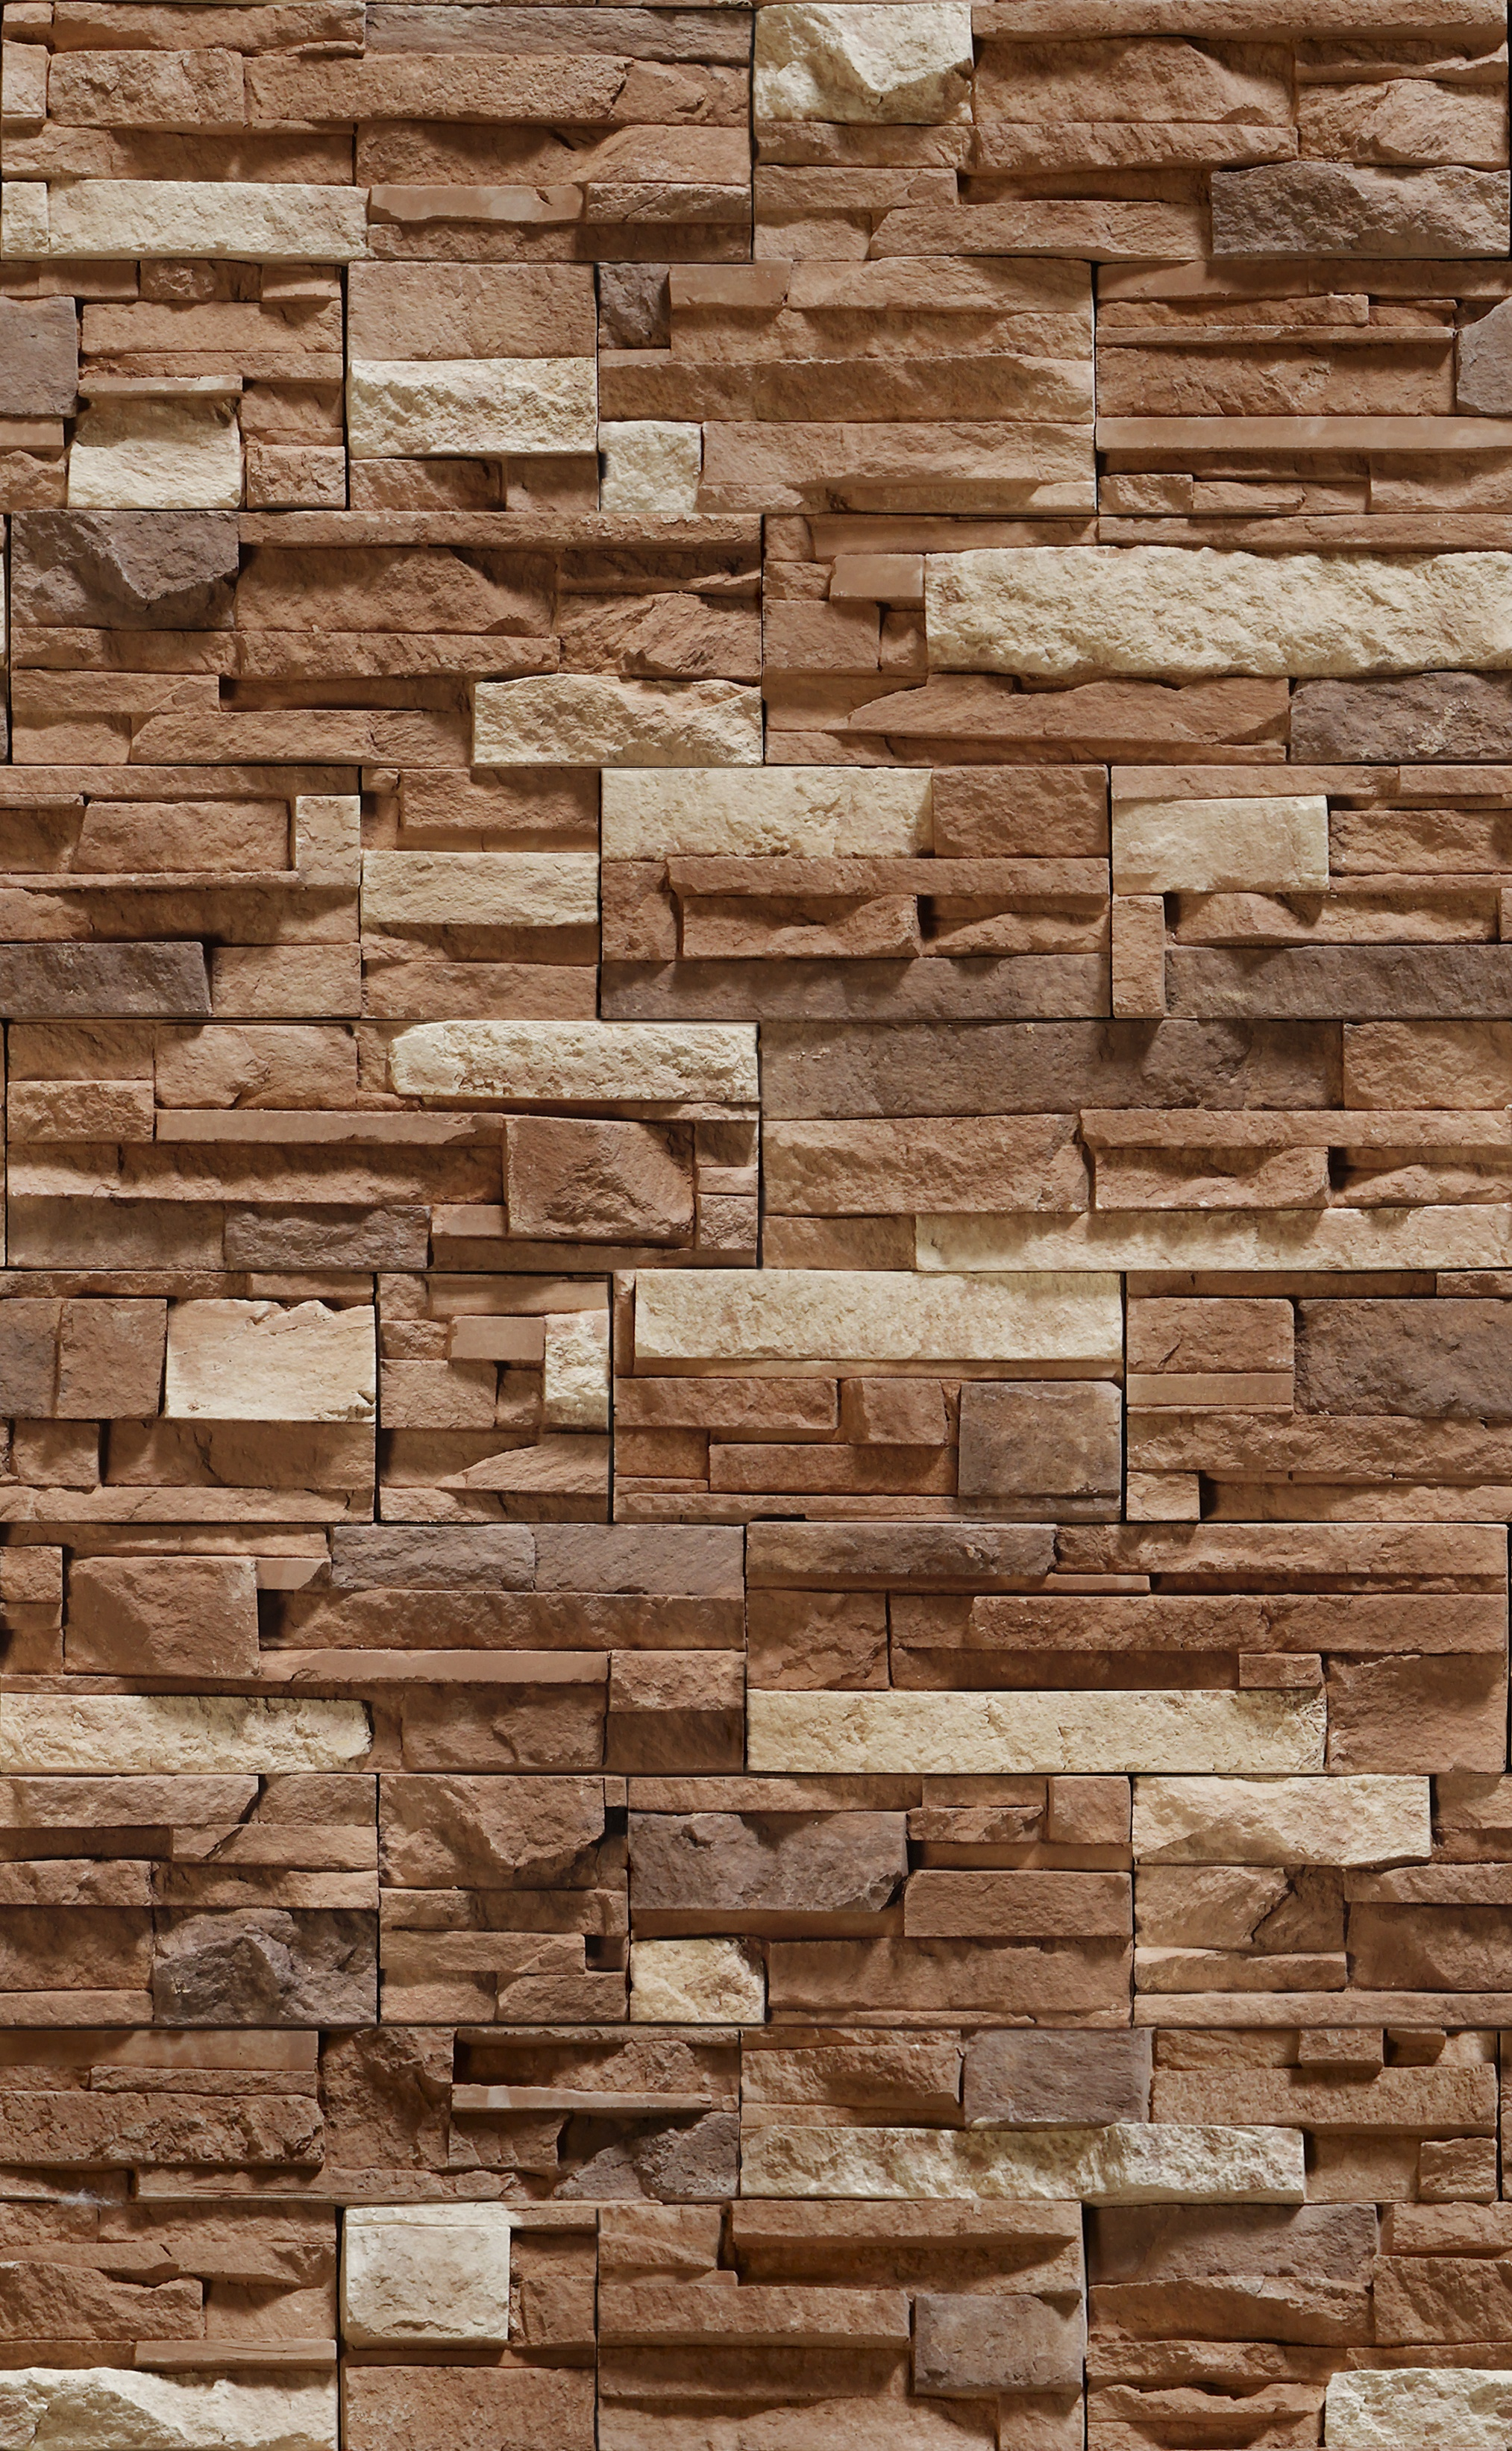 дикий stone, wall, texture stone, stone wall, download background, stone background